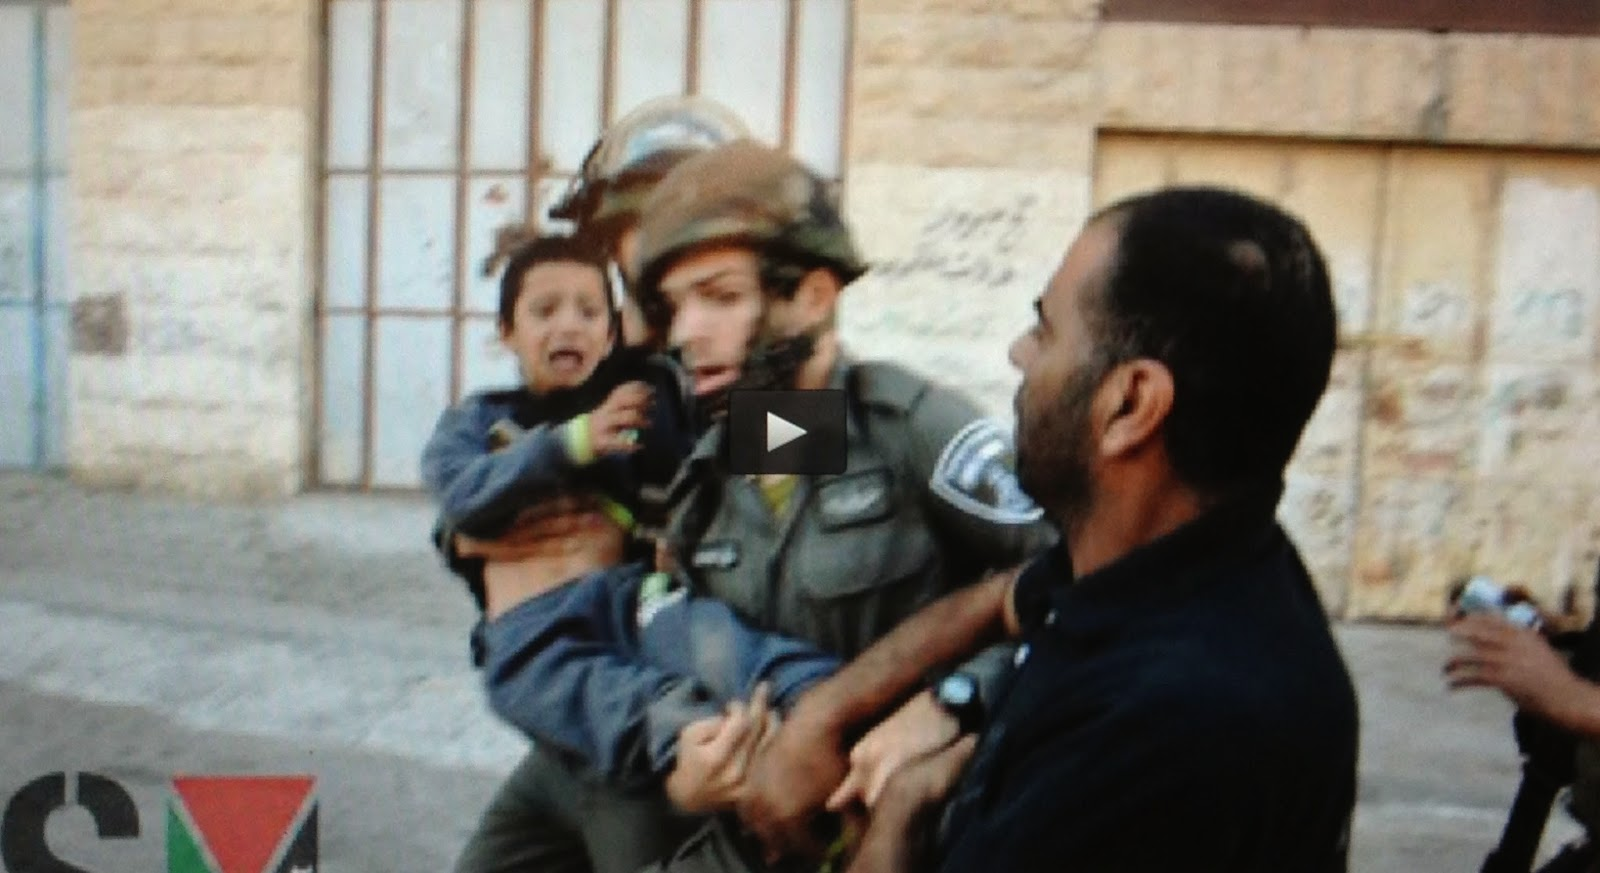 http://www.presstv.com/detail/2014/09/09/378187/video-israelis-arrest-7yearold-in-wb/